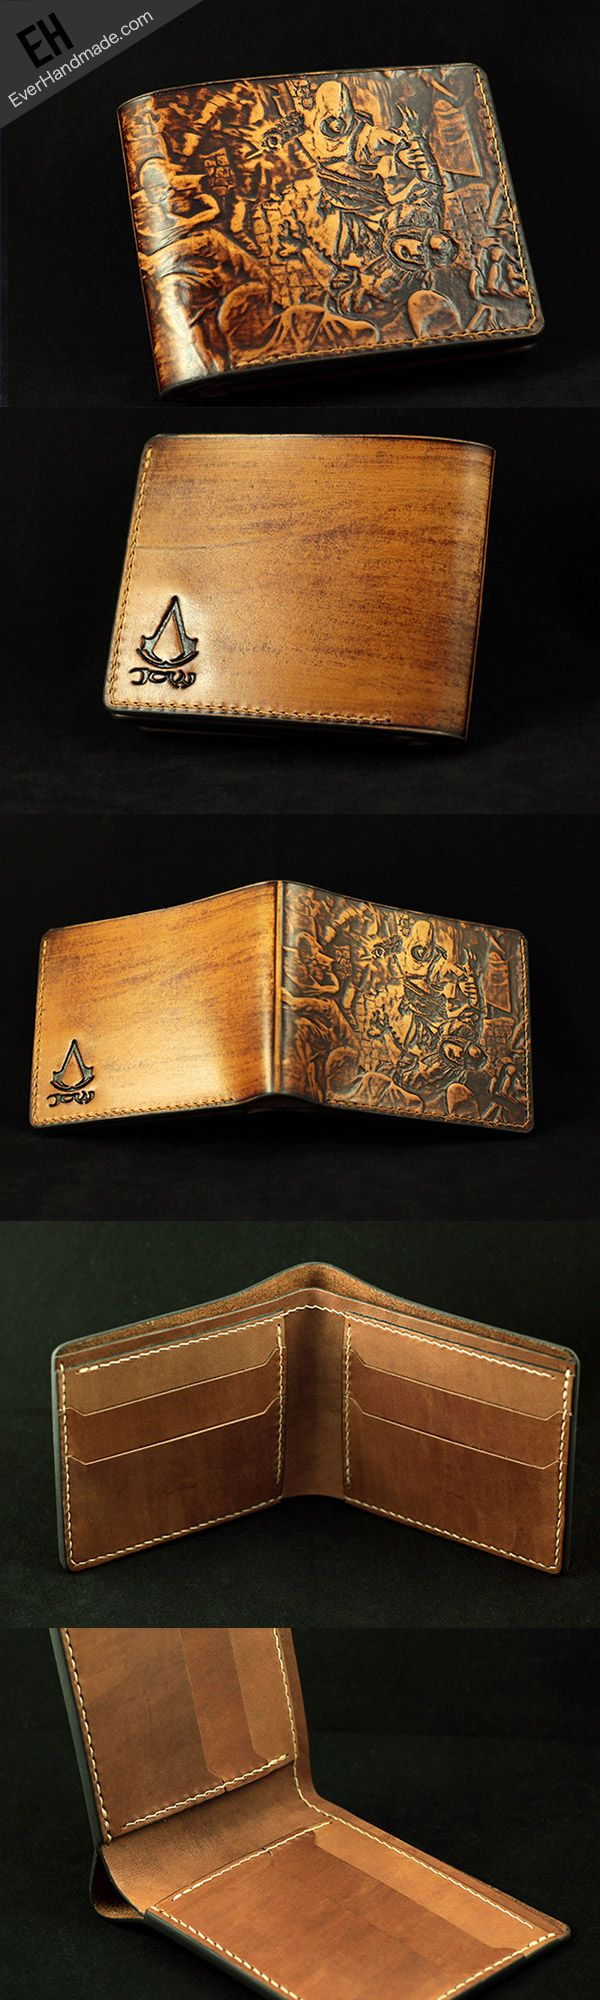 78 Best Techniques Images On Pinterest Leather Craft Business Card Holder Circuit Board Geekery Mens Stained Glass Handmade Assassins Creed Carved Short Wallet For Men So Stunning